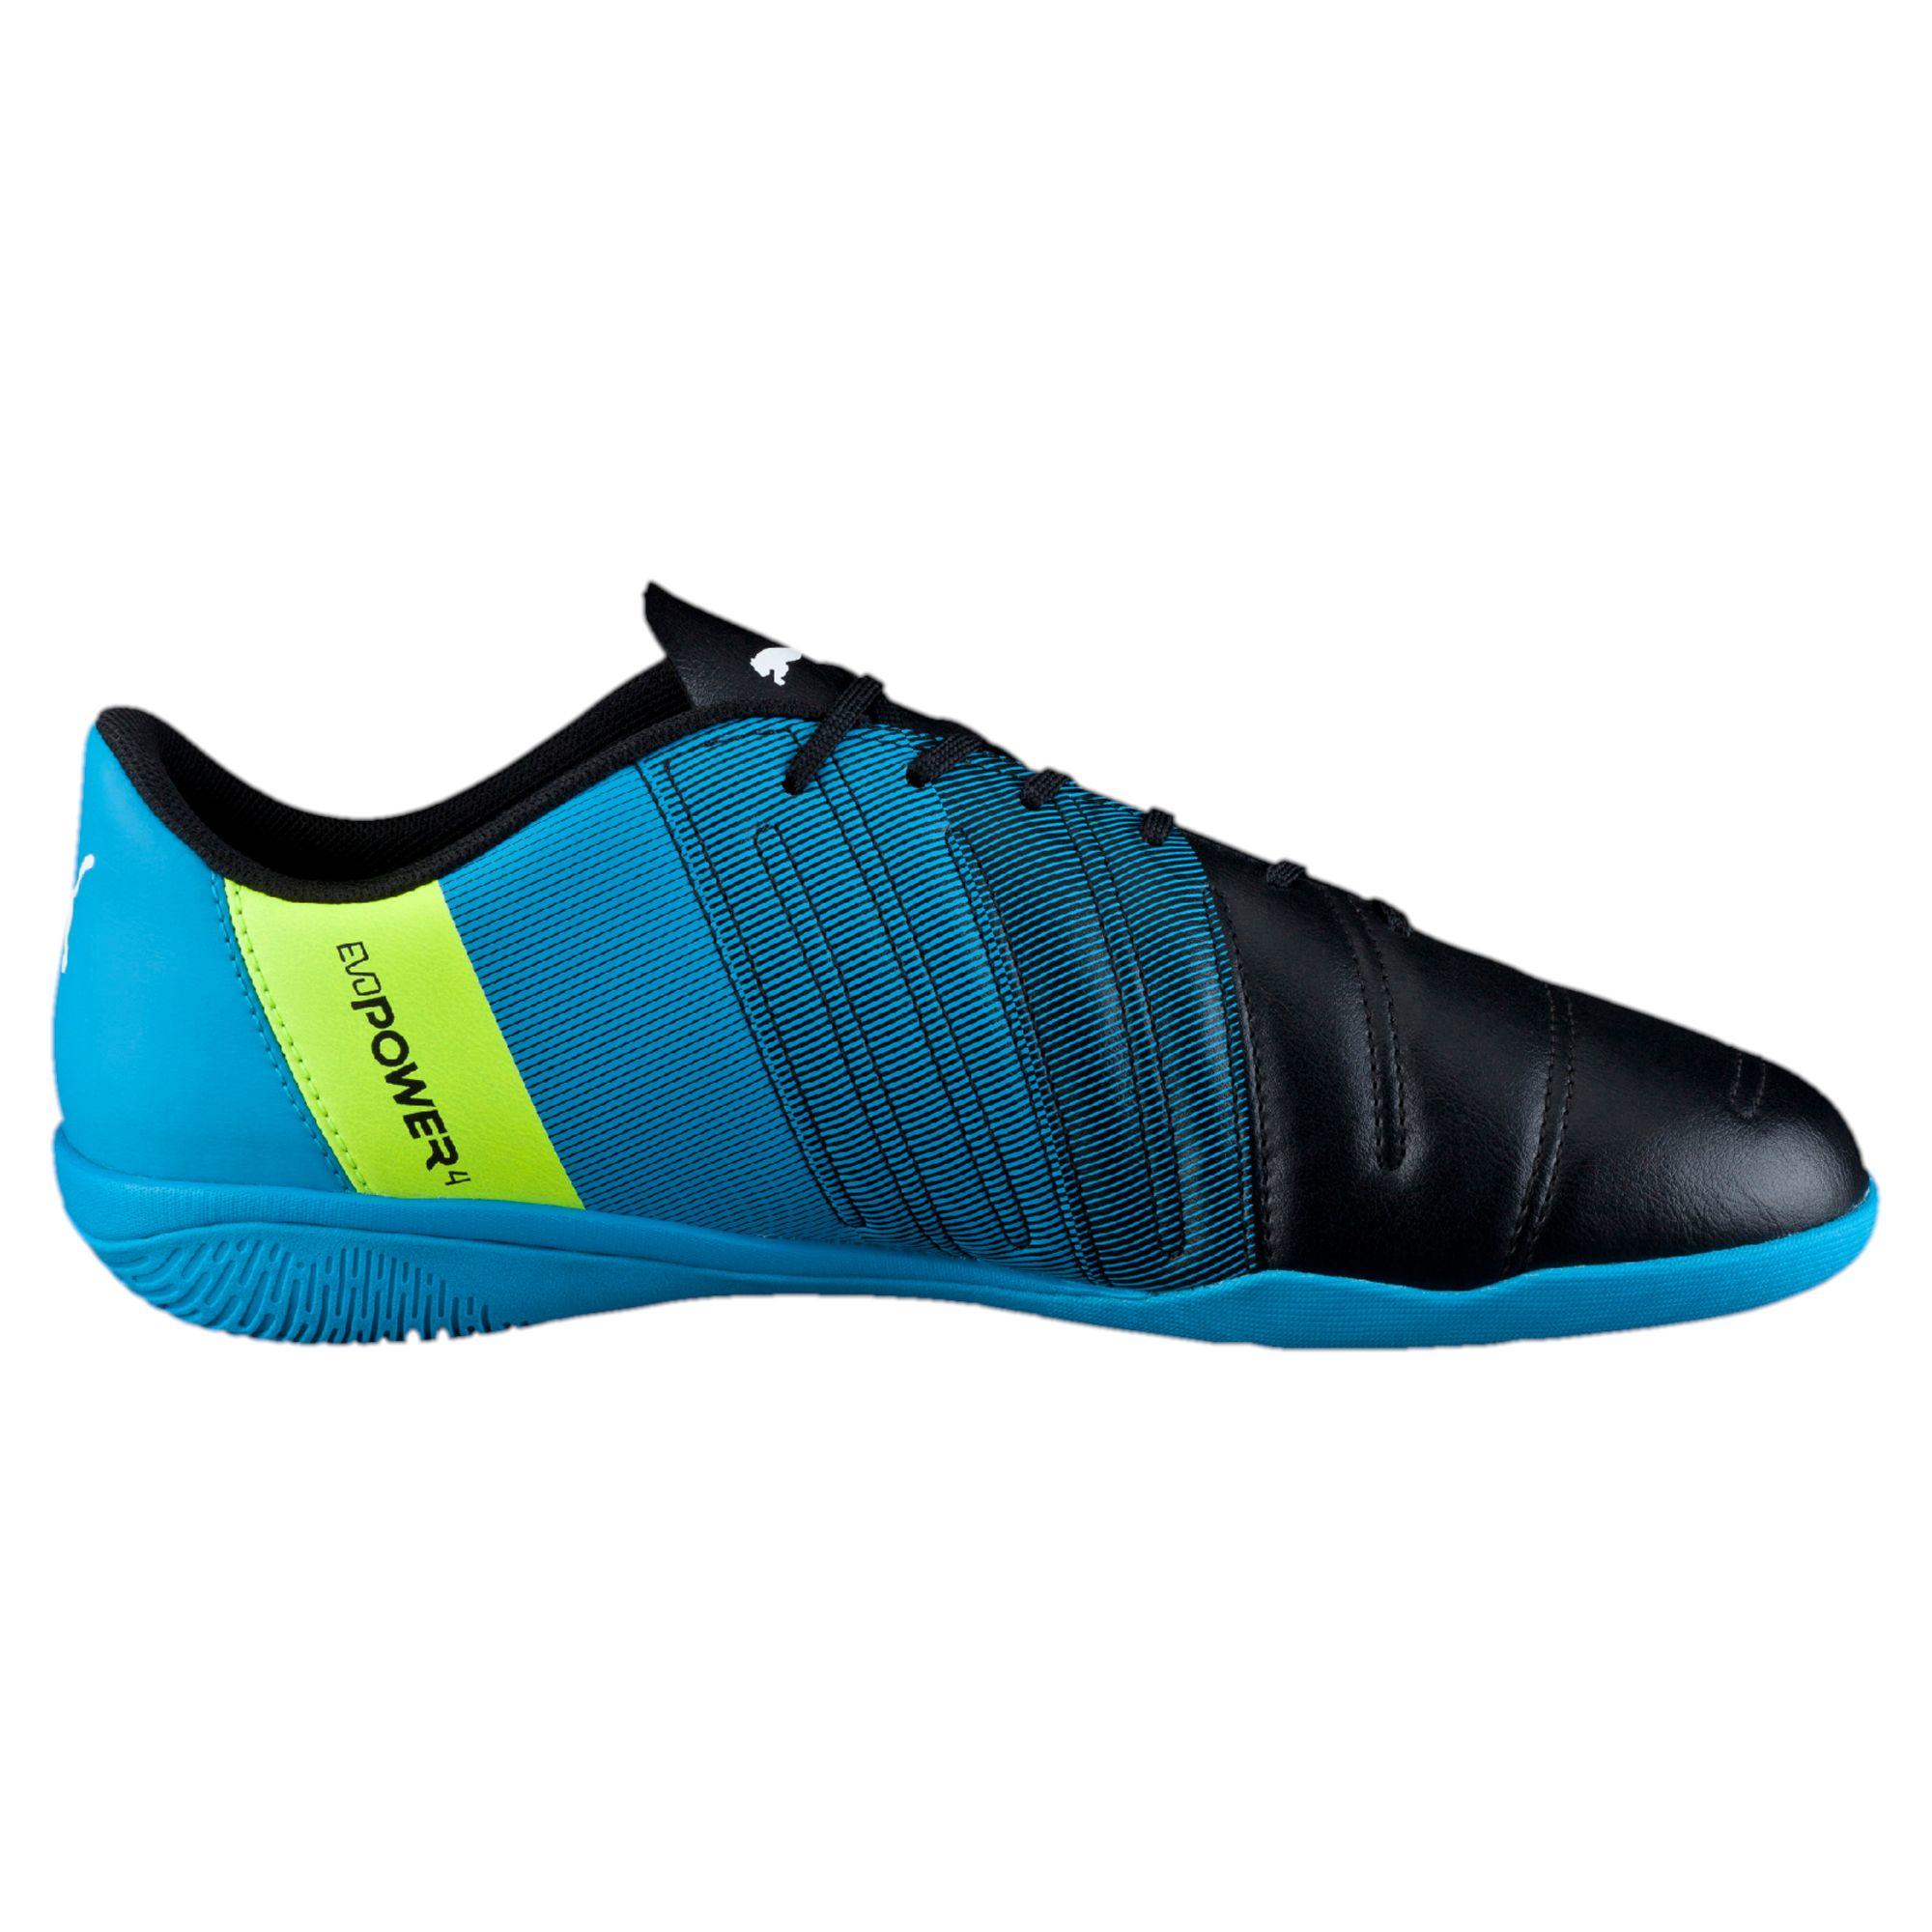 308c109a896bf3 ... inexpensive lyst puma evopower 4.3 mens indoor soccer shoes in pink for  men 6c8d9 0e840